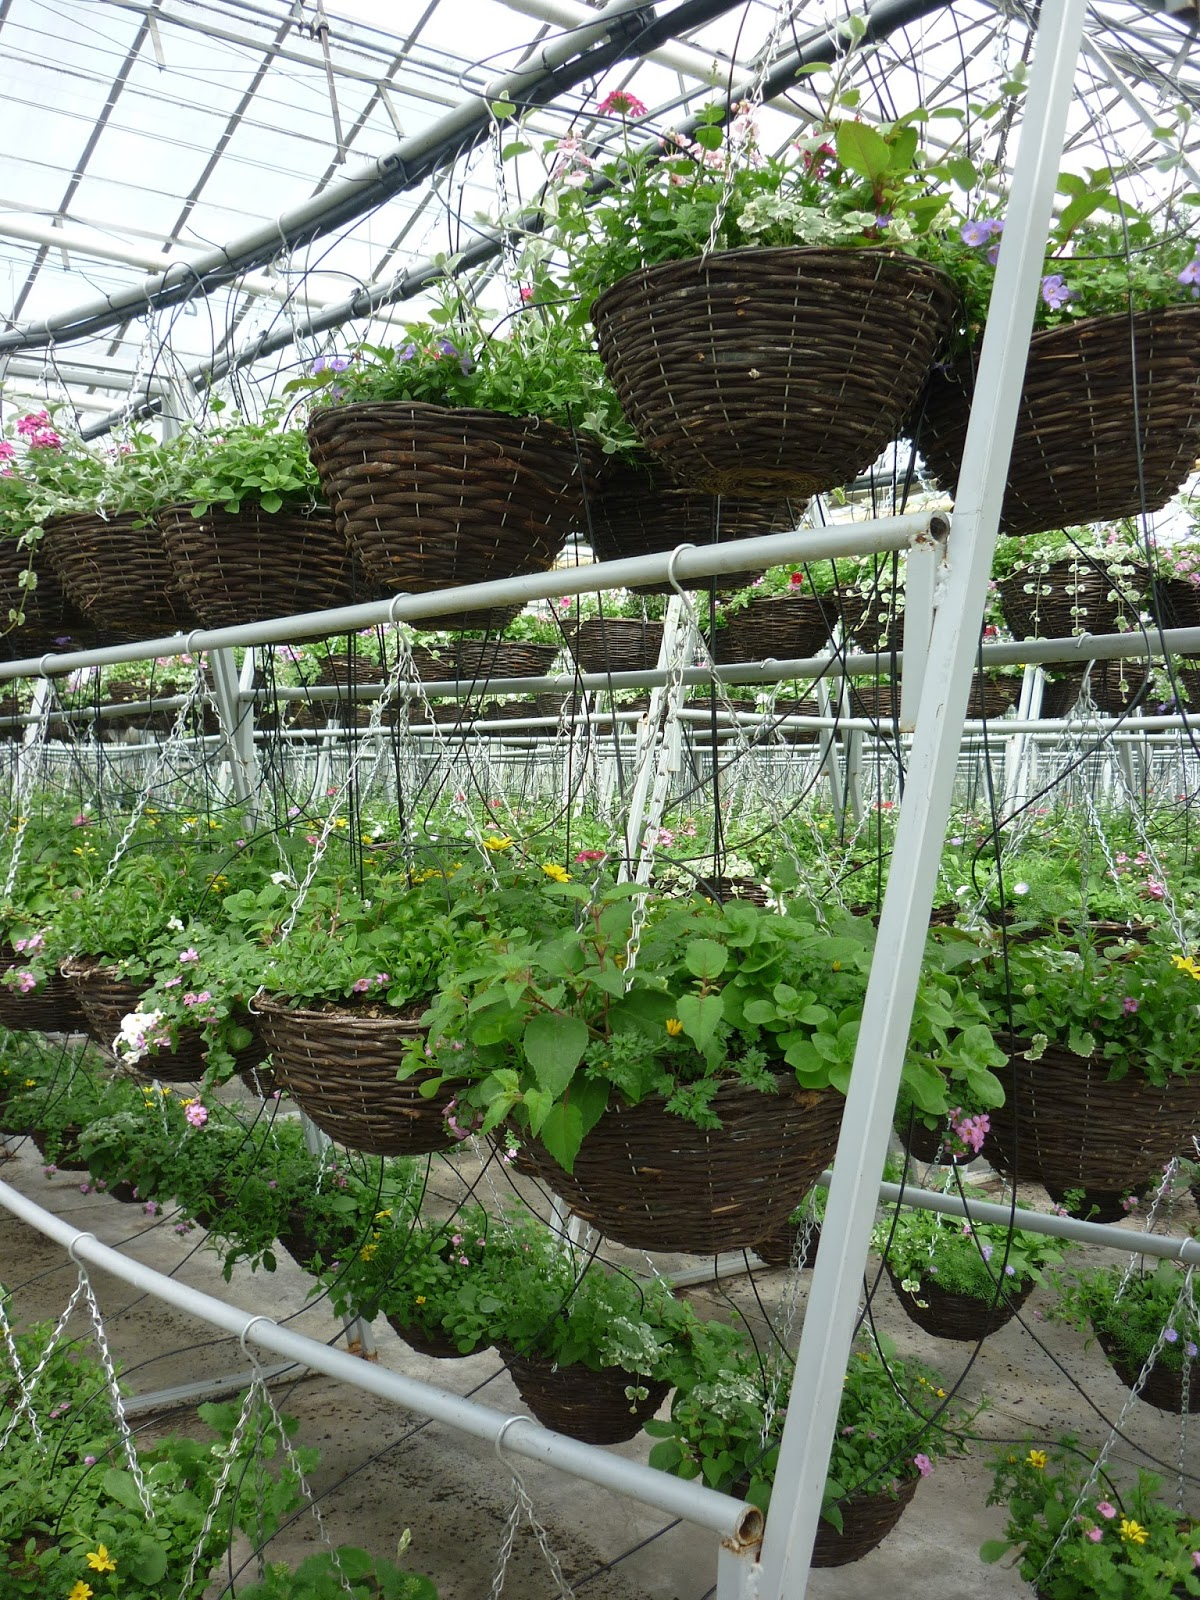 Occupying A Site Of More Than 30 Acres (1,400,000 Square Feet!), This  Phenomenal Expanse Of Glasshouses   Which Madam Arcati And I Visited Today    Is A ...